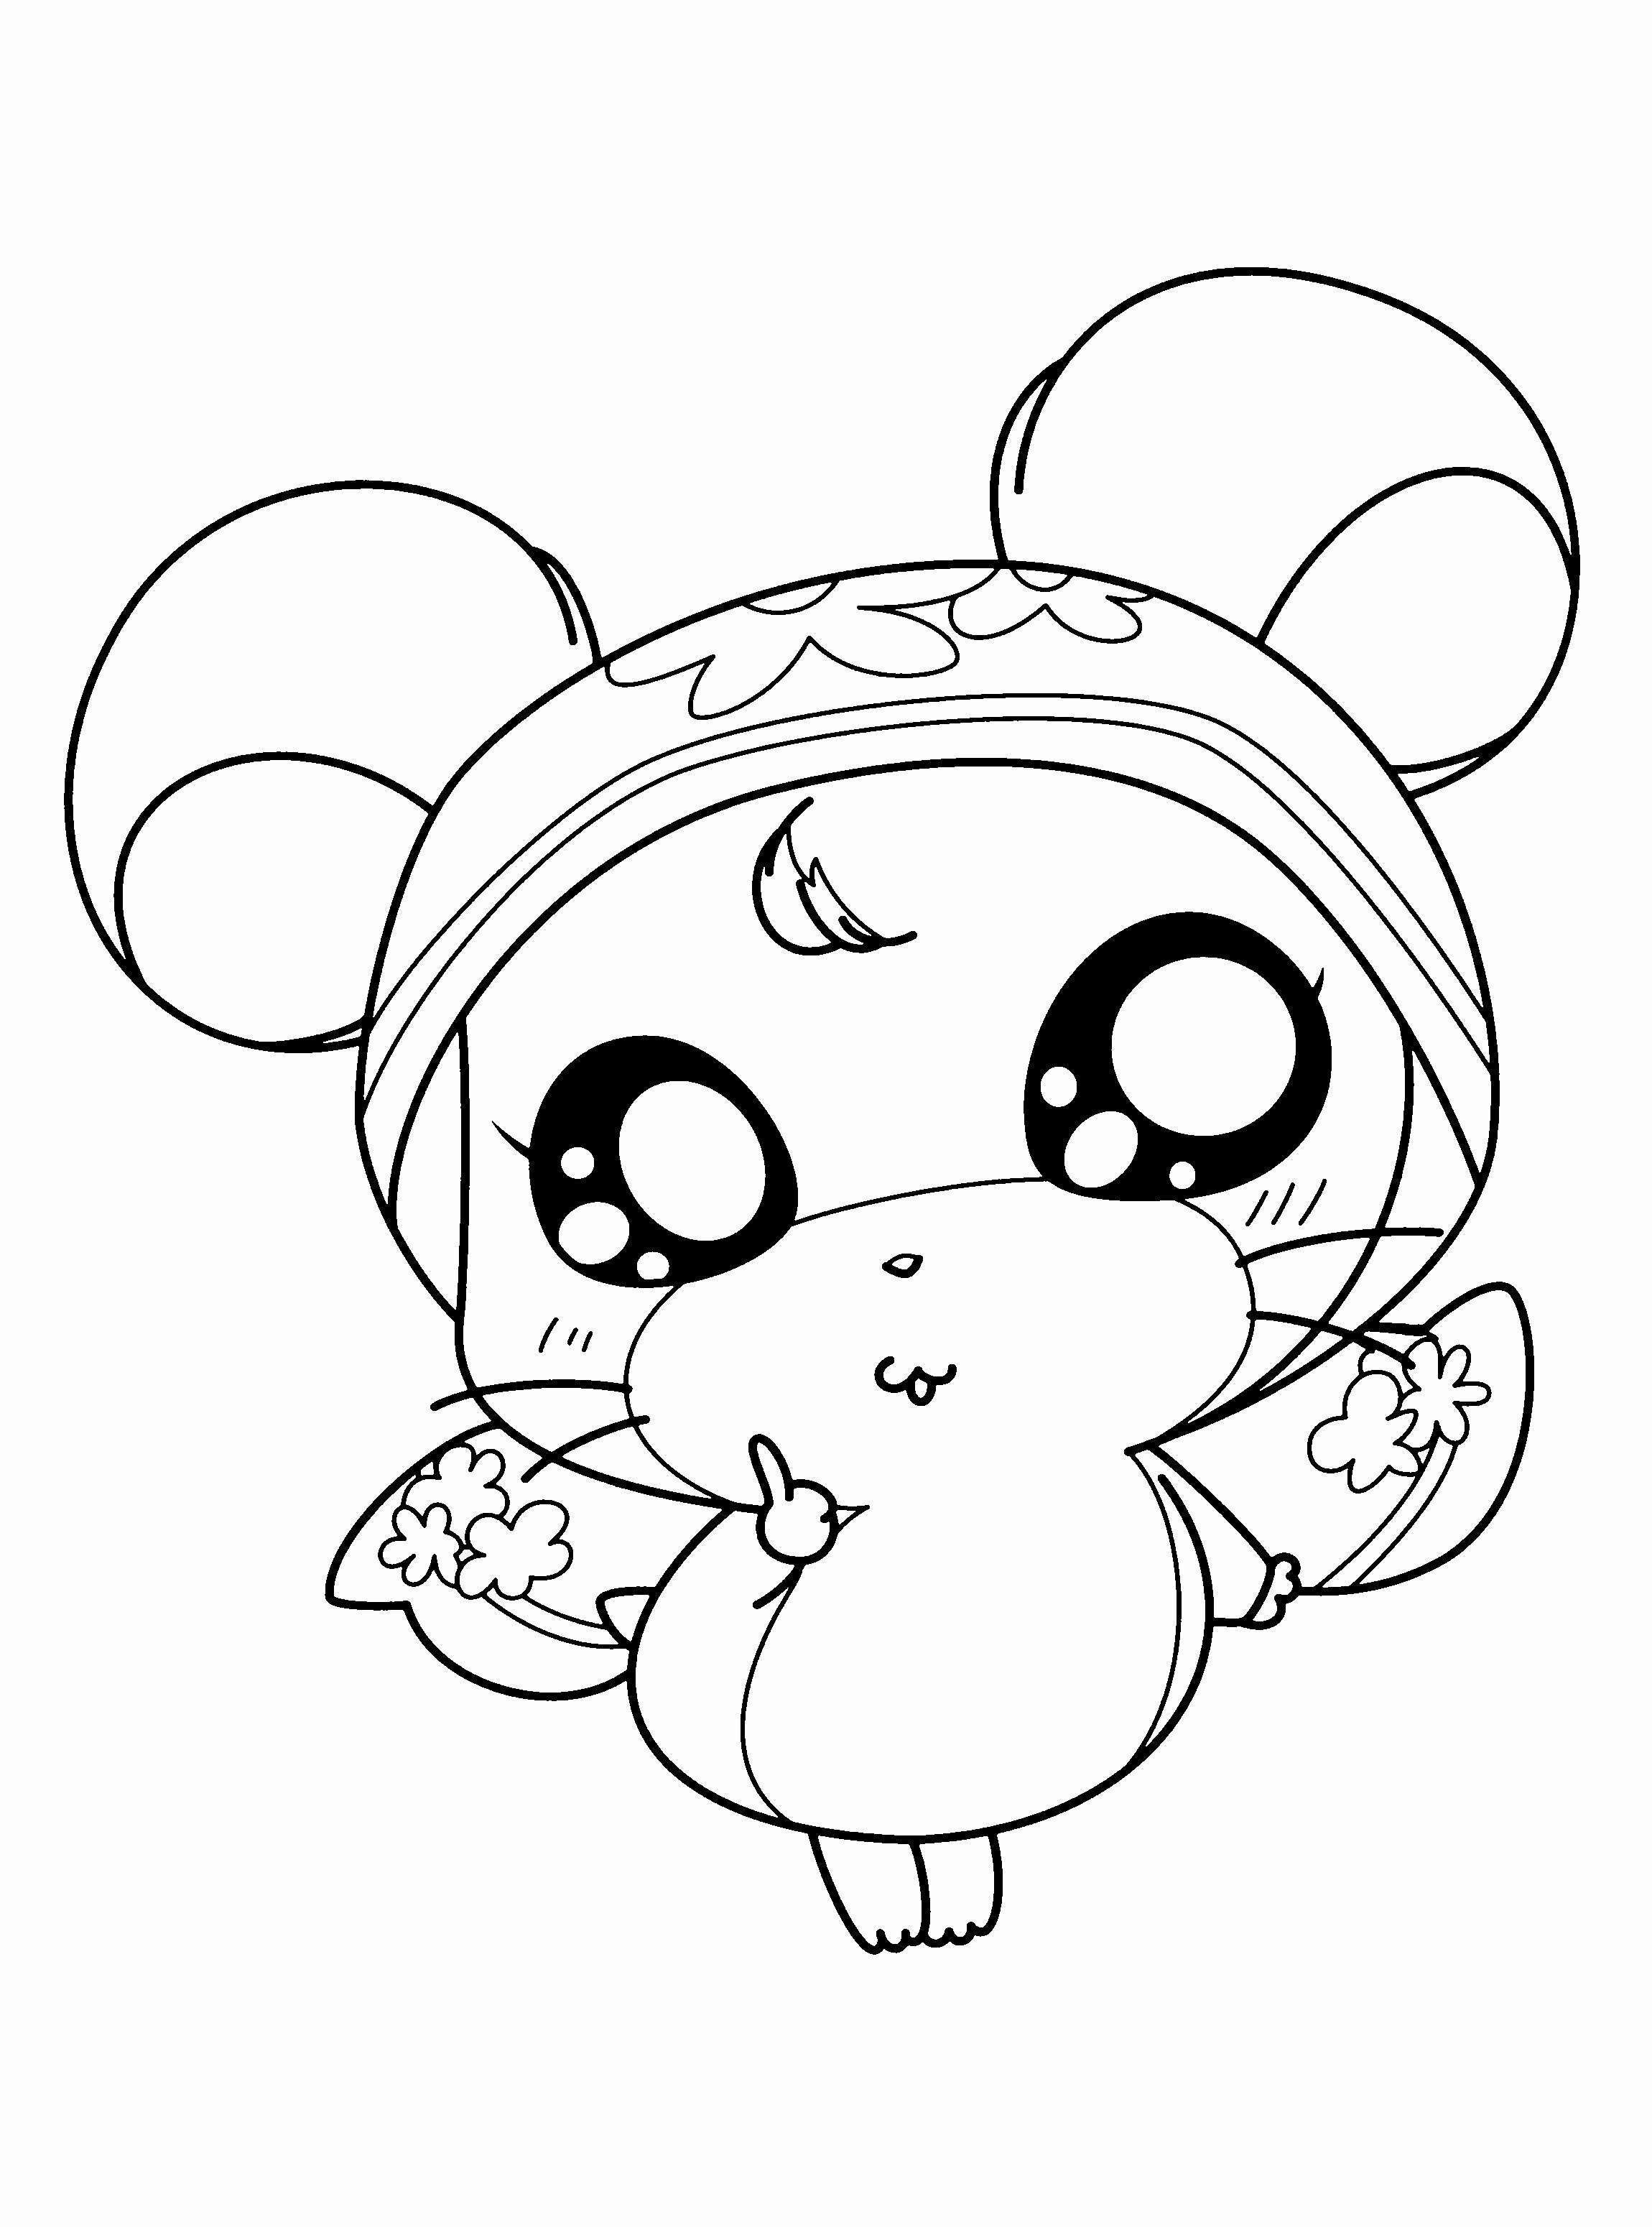 Micky Maus Baby Ausmalbilder Frisch Mickey and Minnie Christmas Coloring Pages Mickey Mouse Christmas Bilder